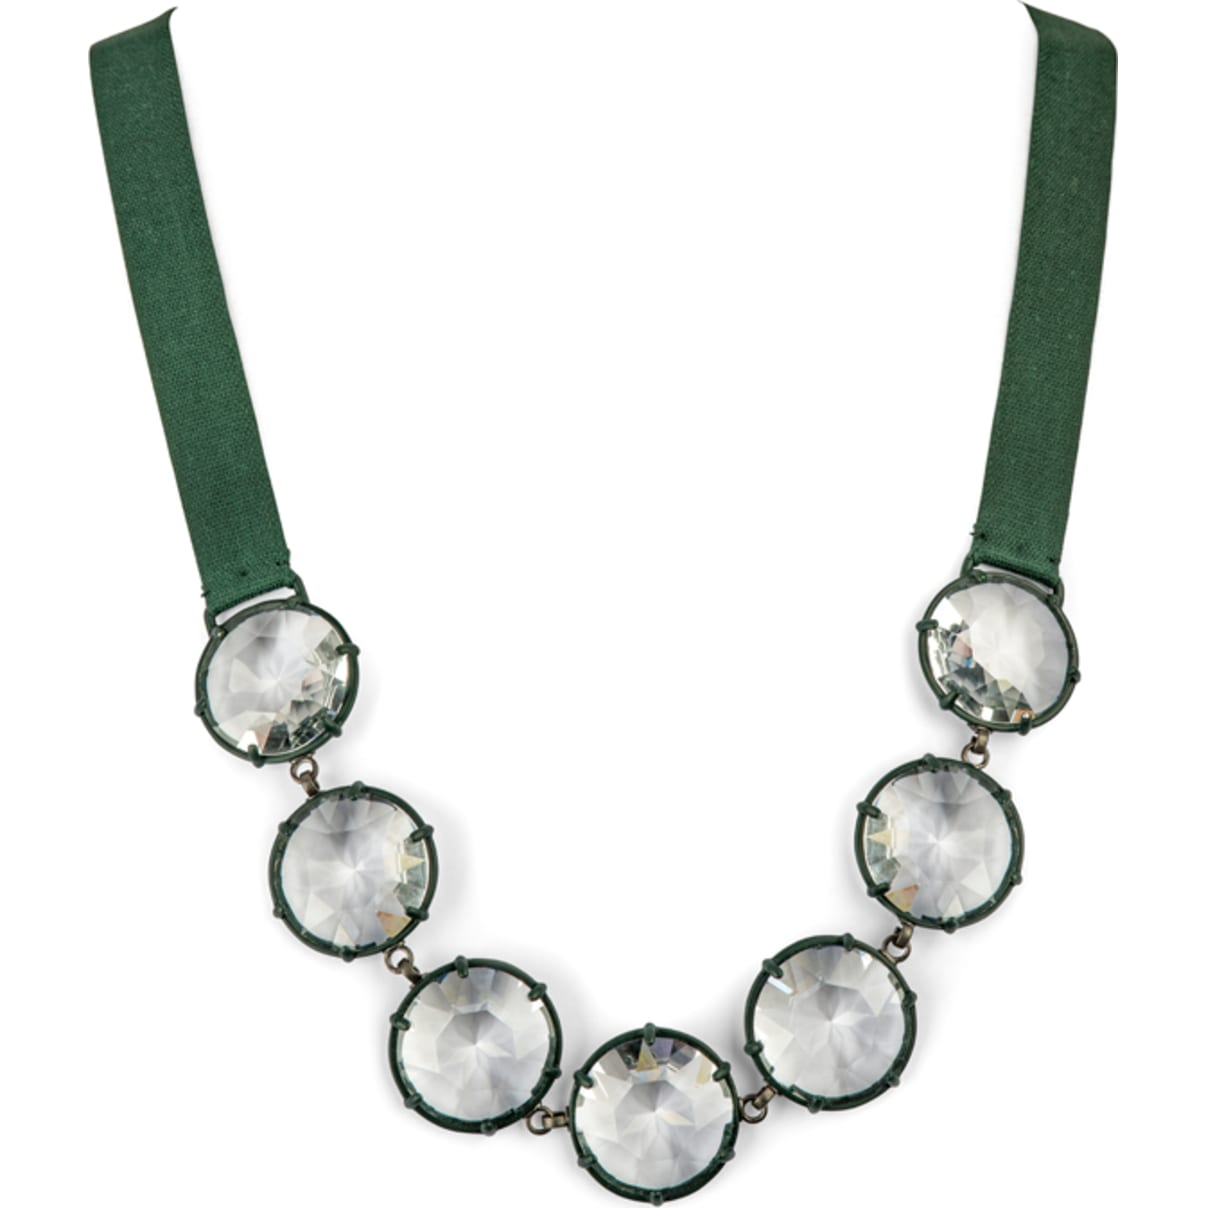 Swarovski Atelier Swarovski by Rosie Assoulin, Jewel-y McHue-y Necklace